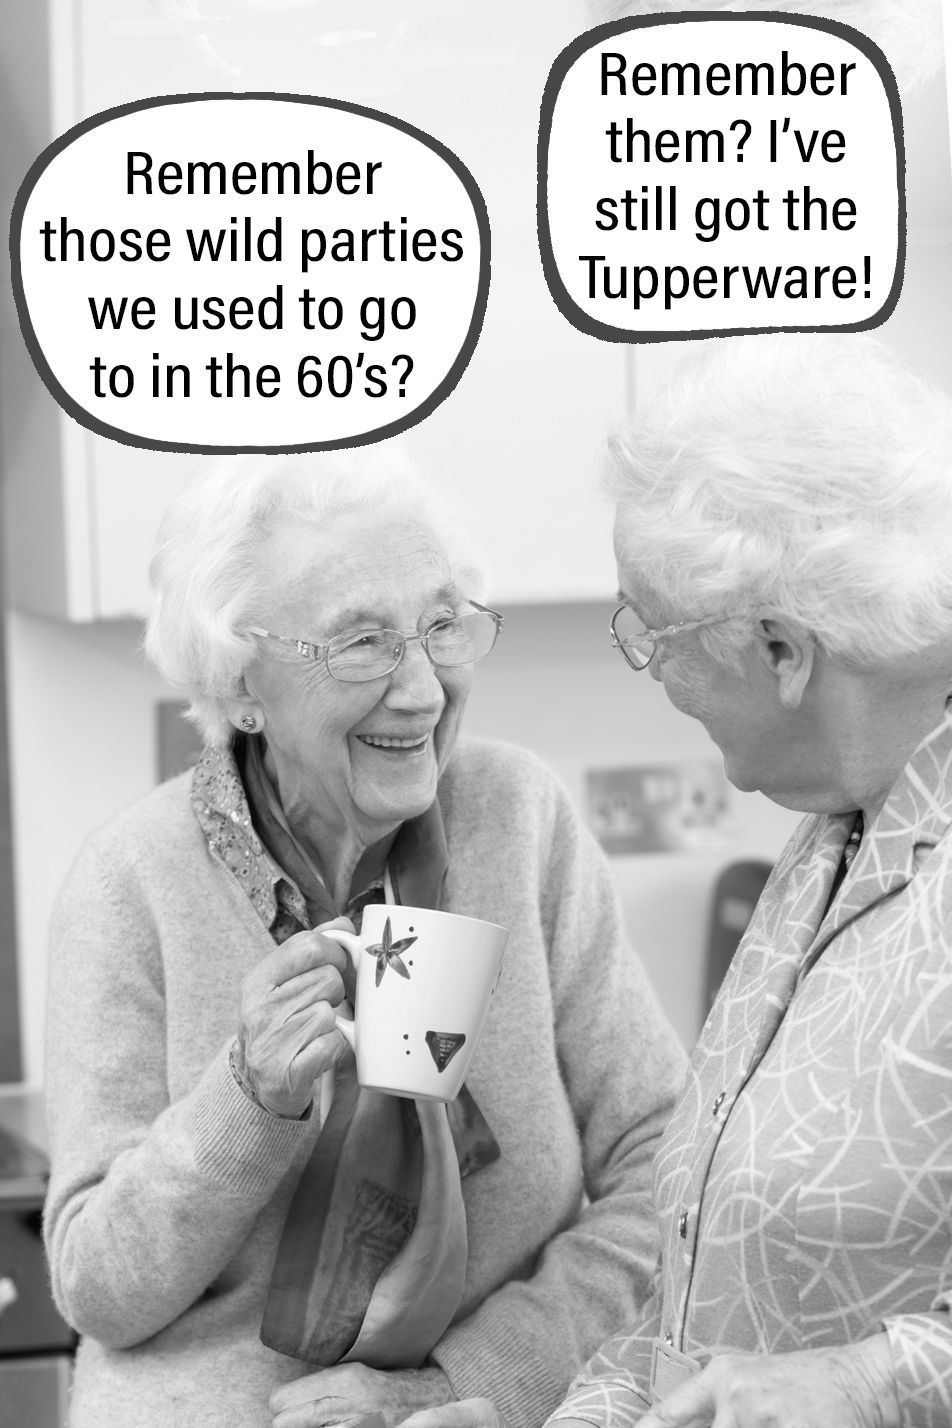 Those Tupperware parties were wild! 😁 | Funny old age ...